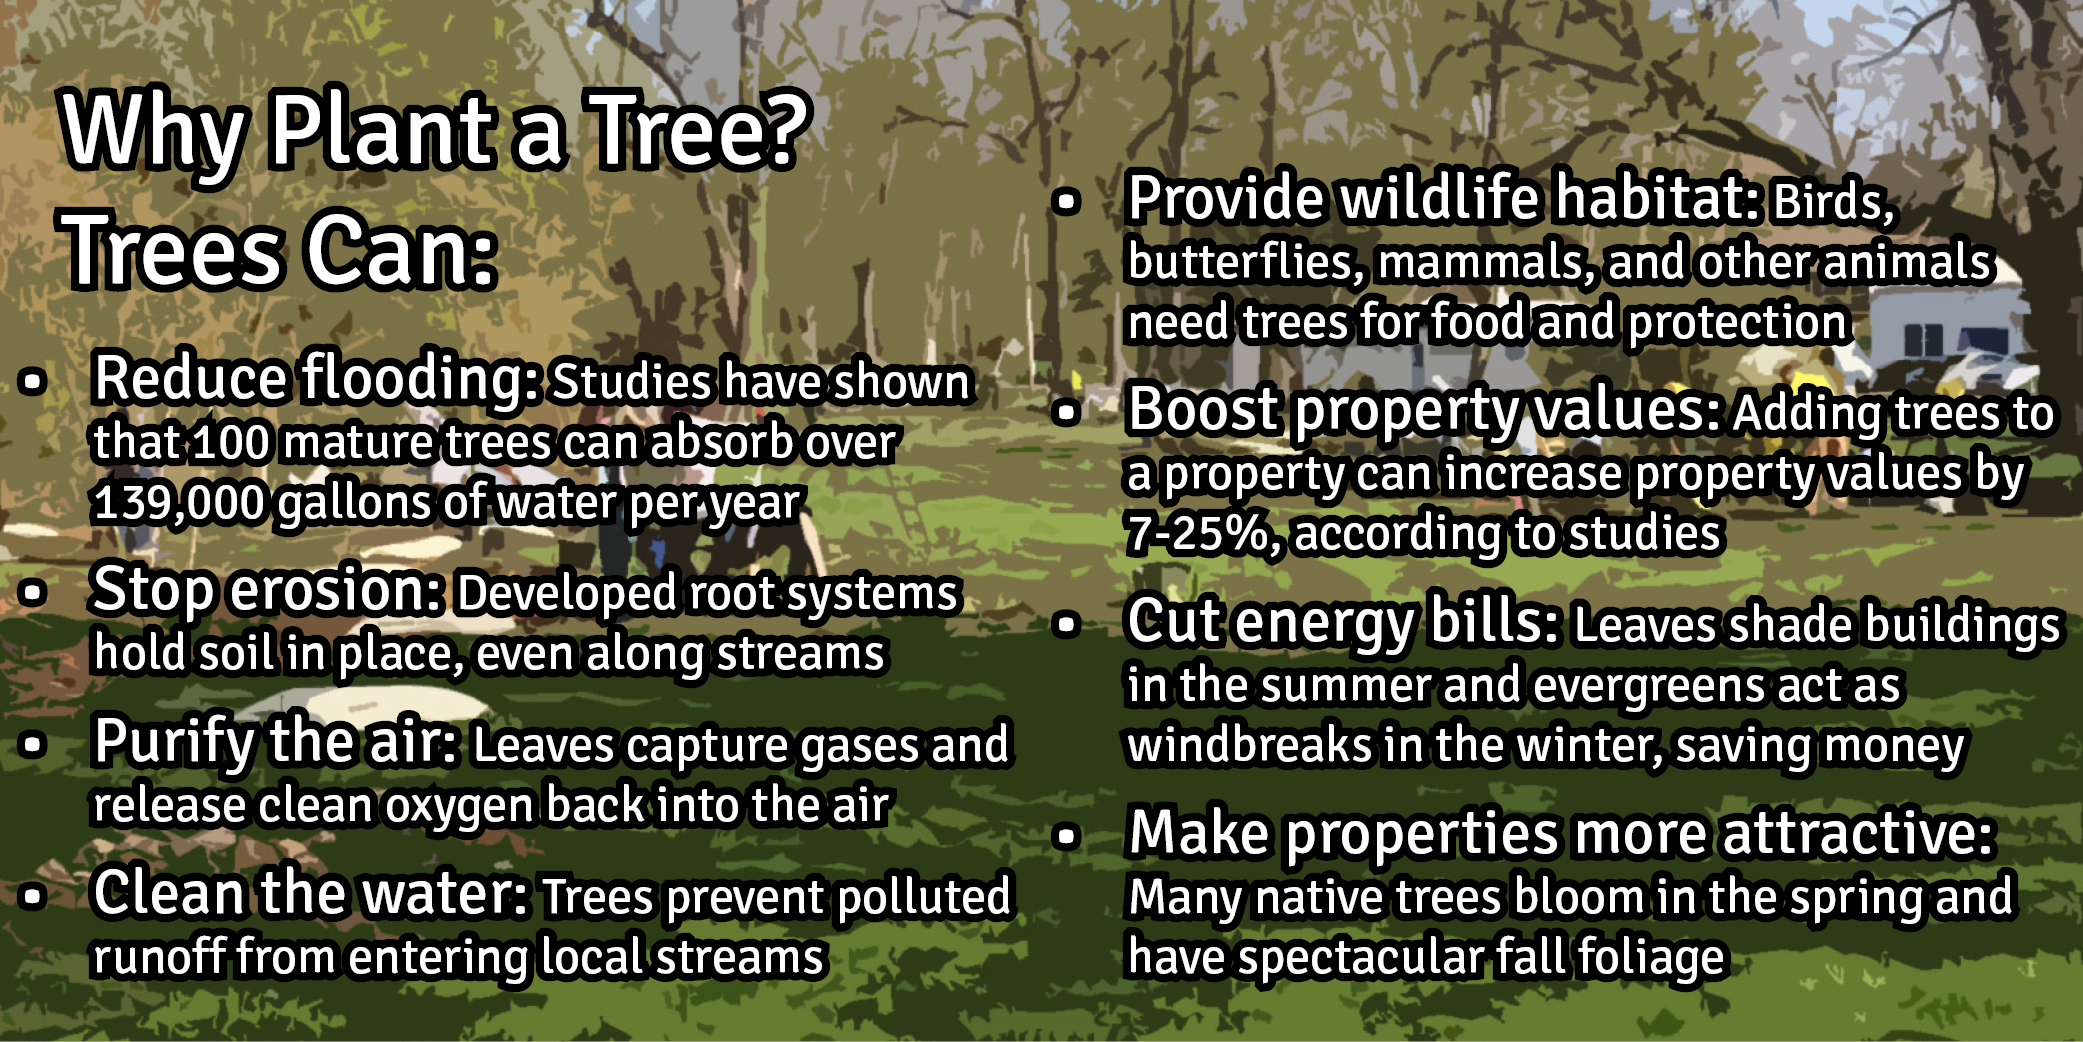 Why Plant a Tree